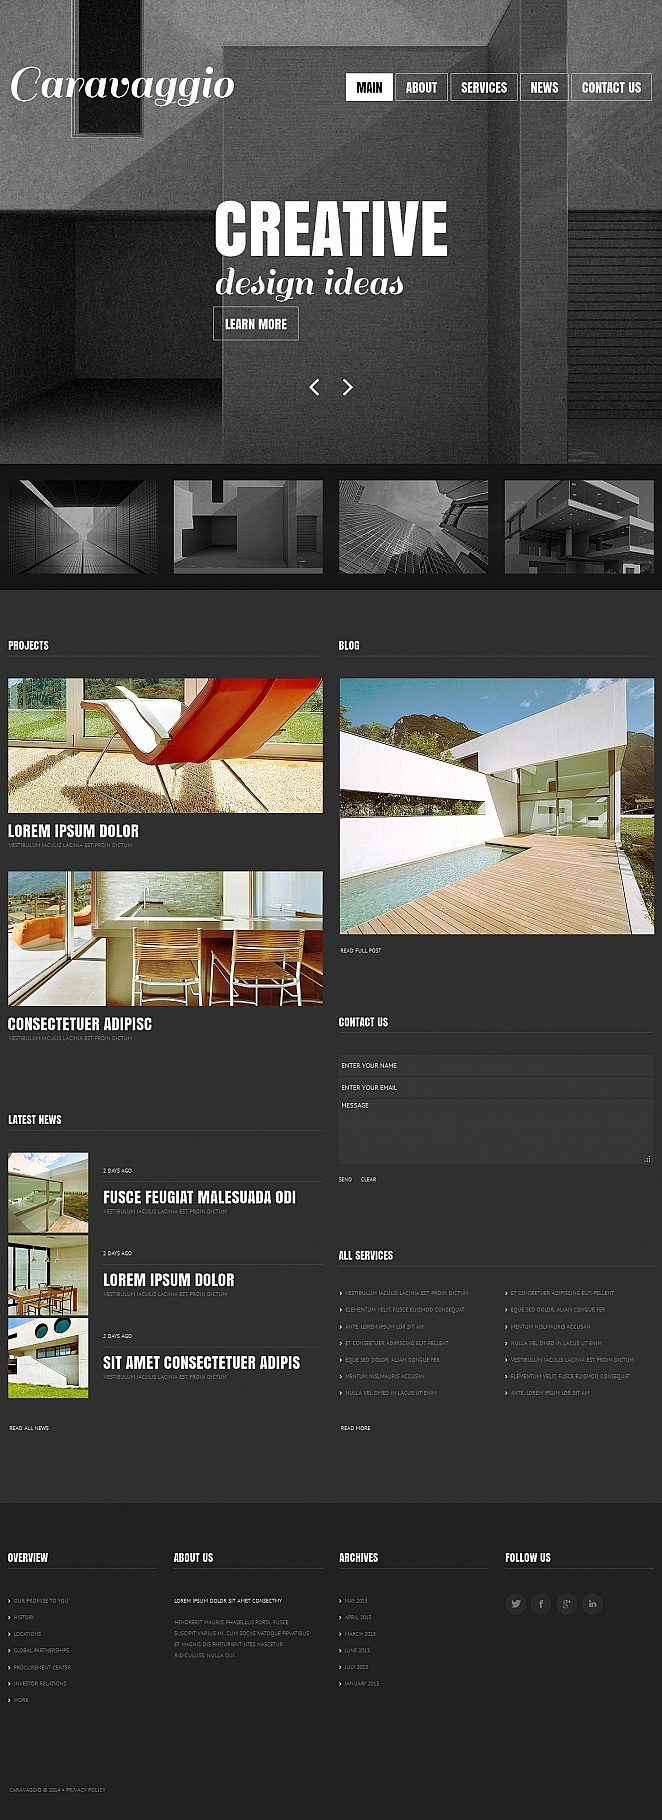 Architecture Website Template with Gray Background - image